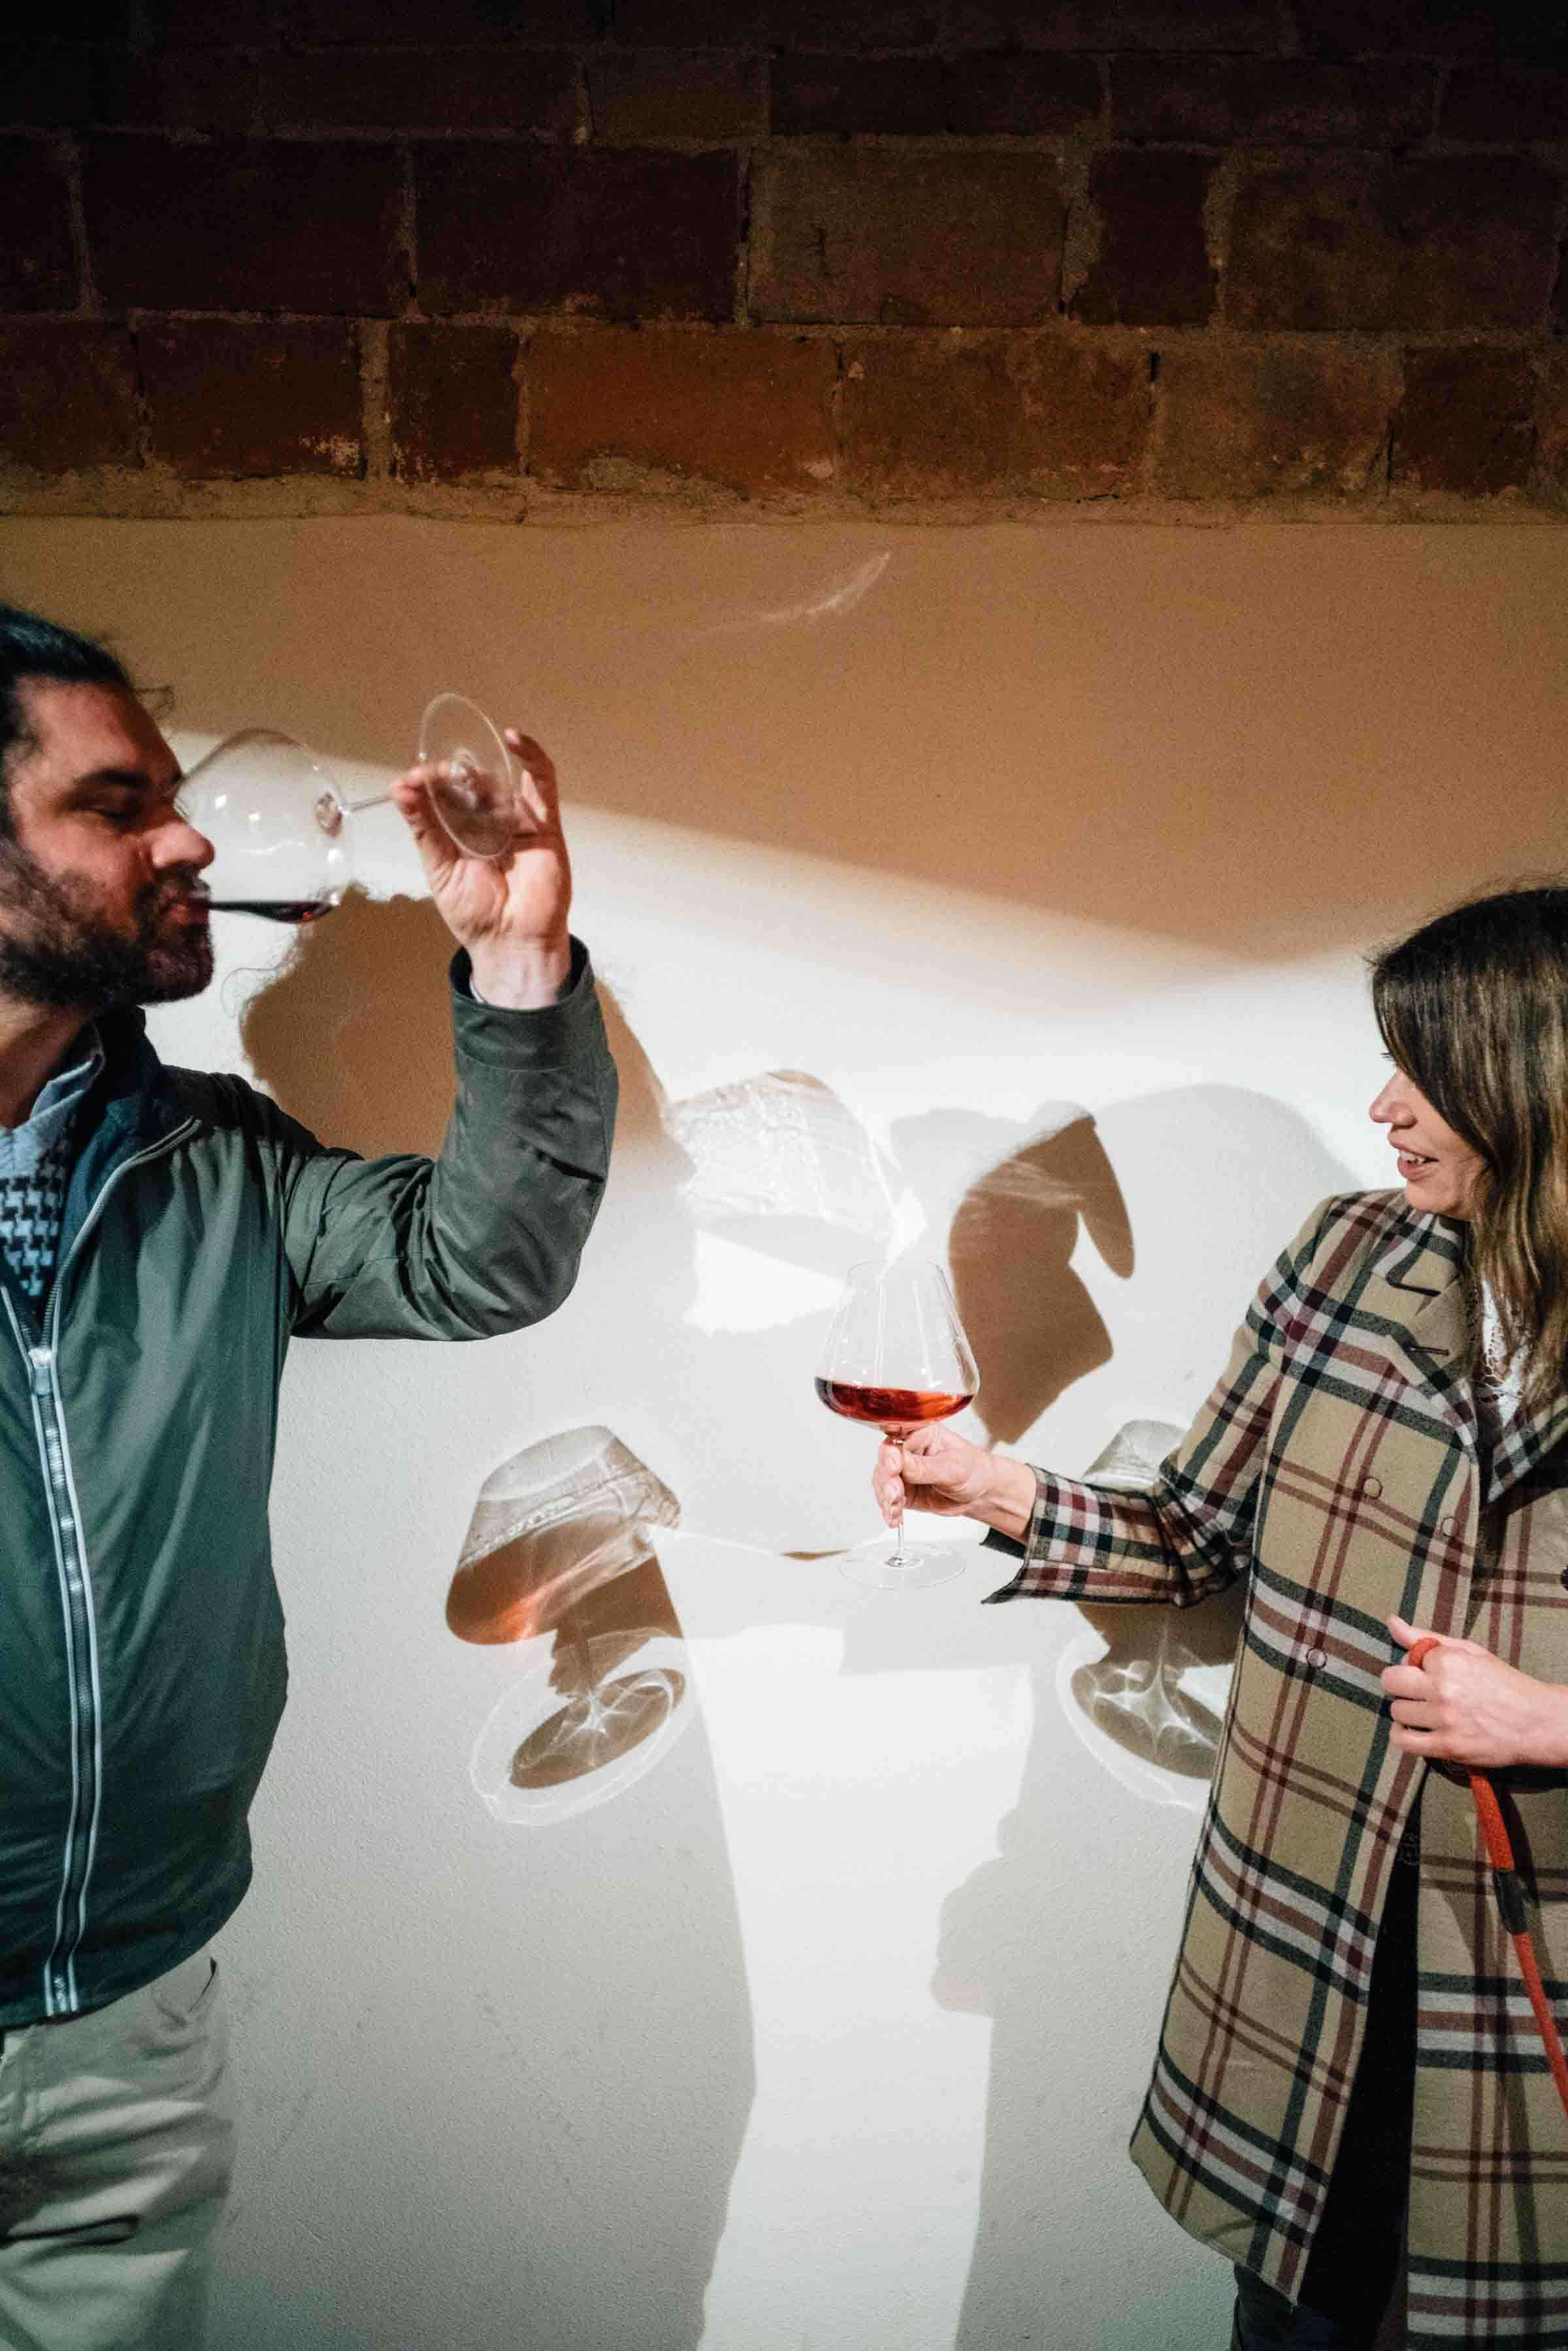 Go wine tasting with Barolo wine in Piedmont. Winemaker Mario Fontana gives us a barrel tasting of his traditional and natural wine in Piedmont Italy